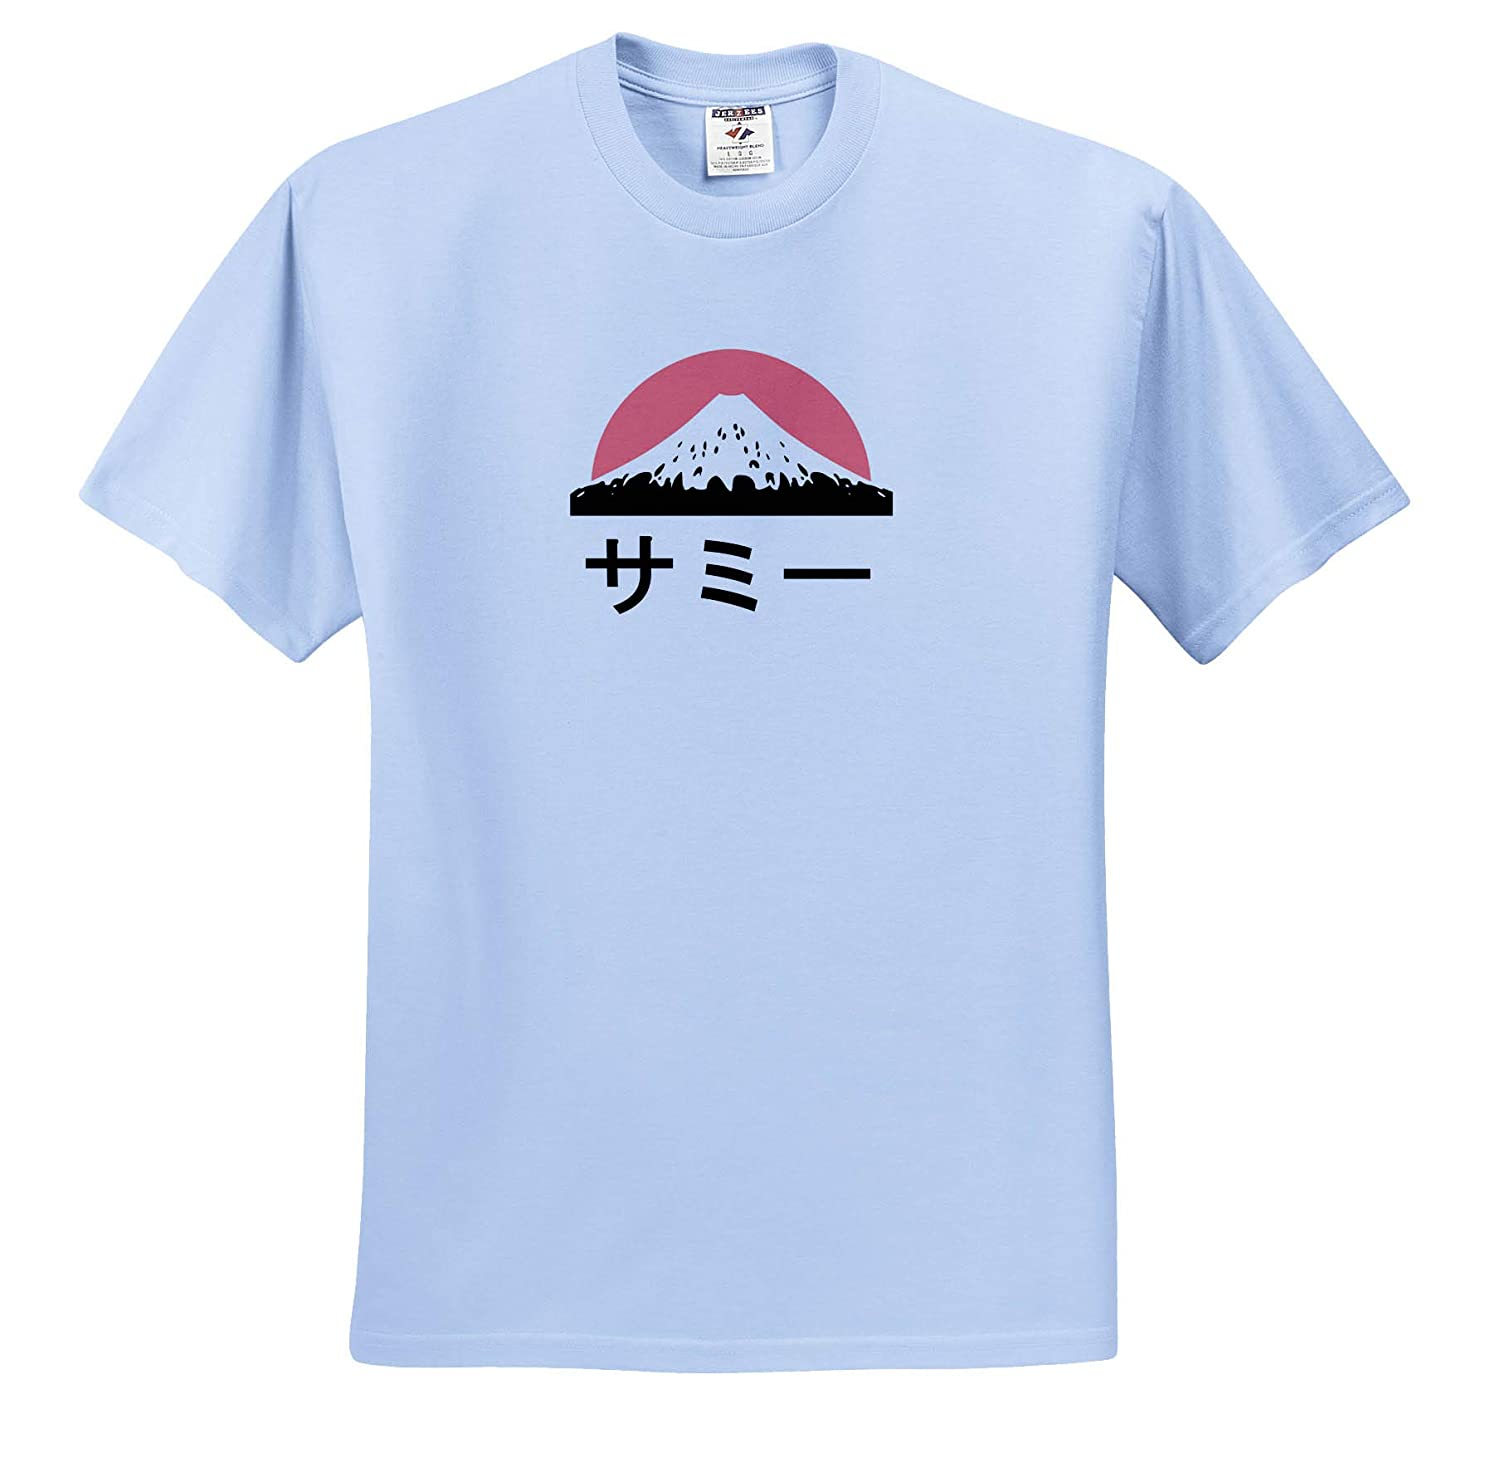 ts/_320616 Adult T-Shirt XL Name in Japanese 3dRose InspirationzStore Sam or Sami in Japanese Letters